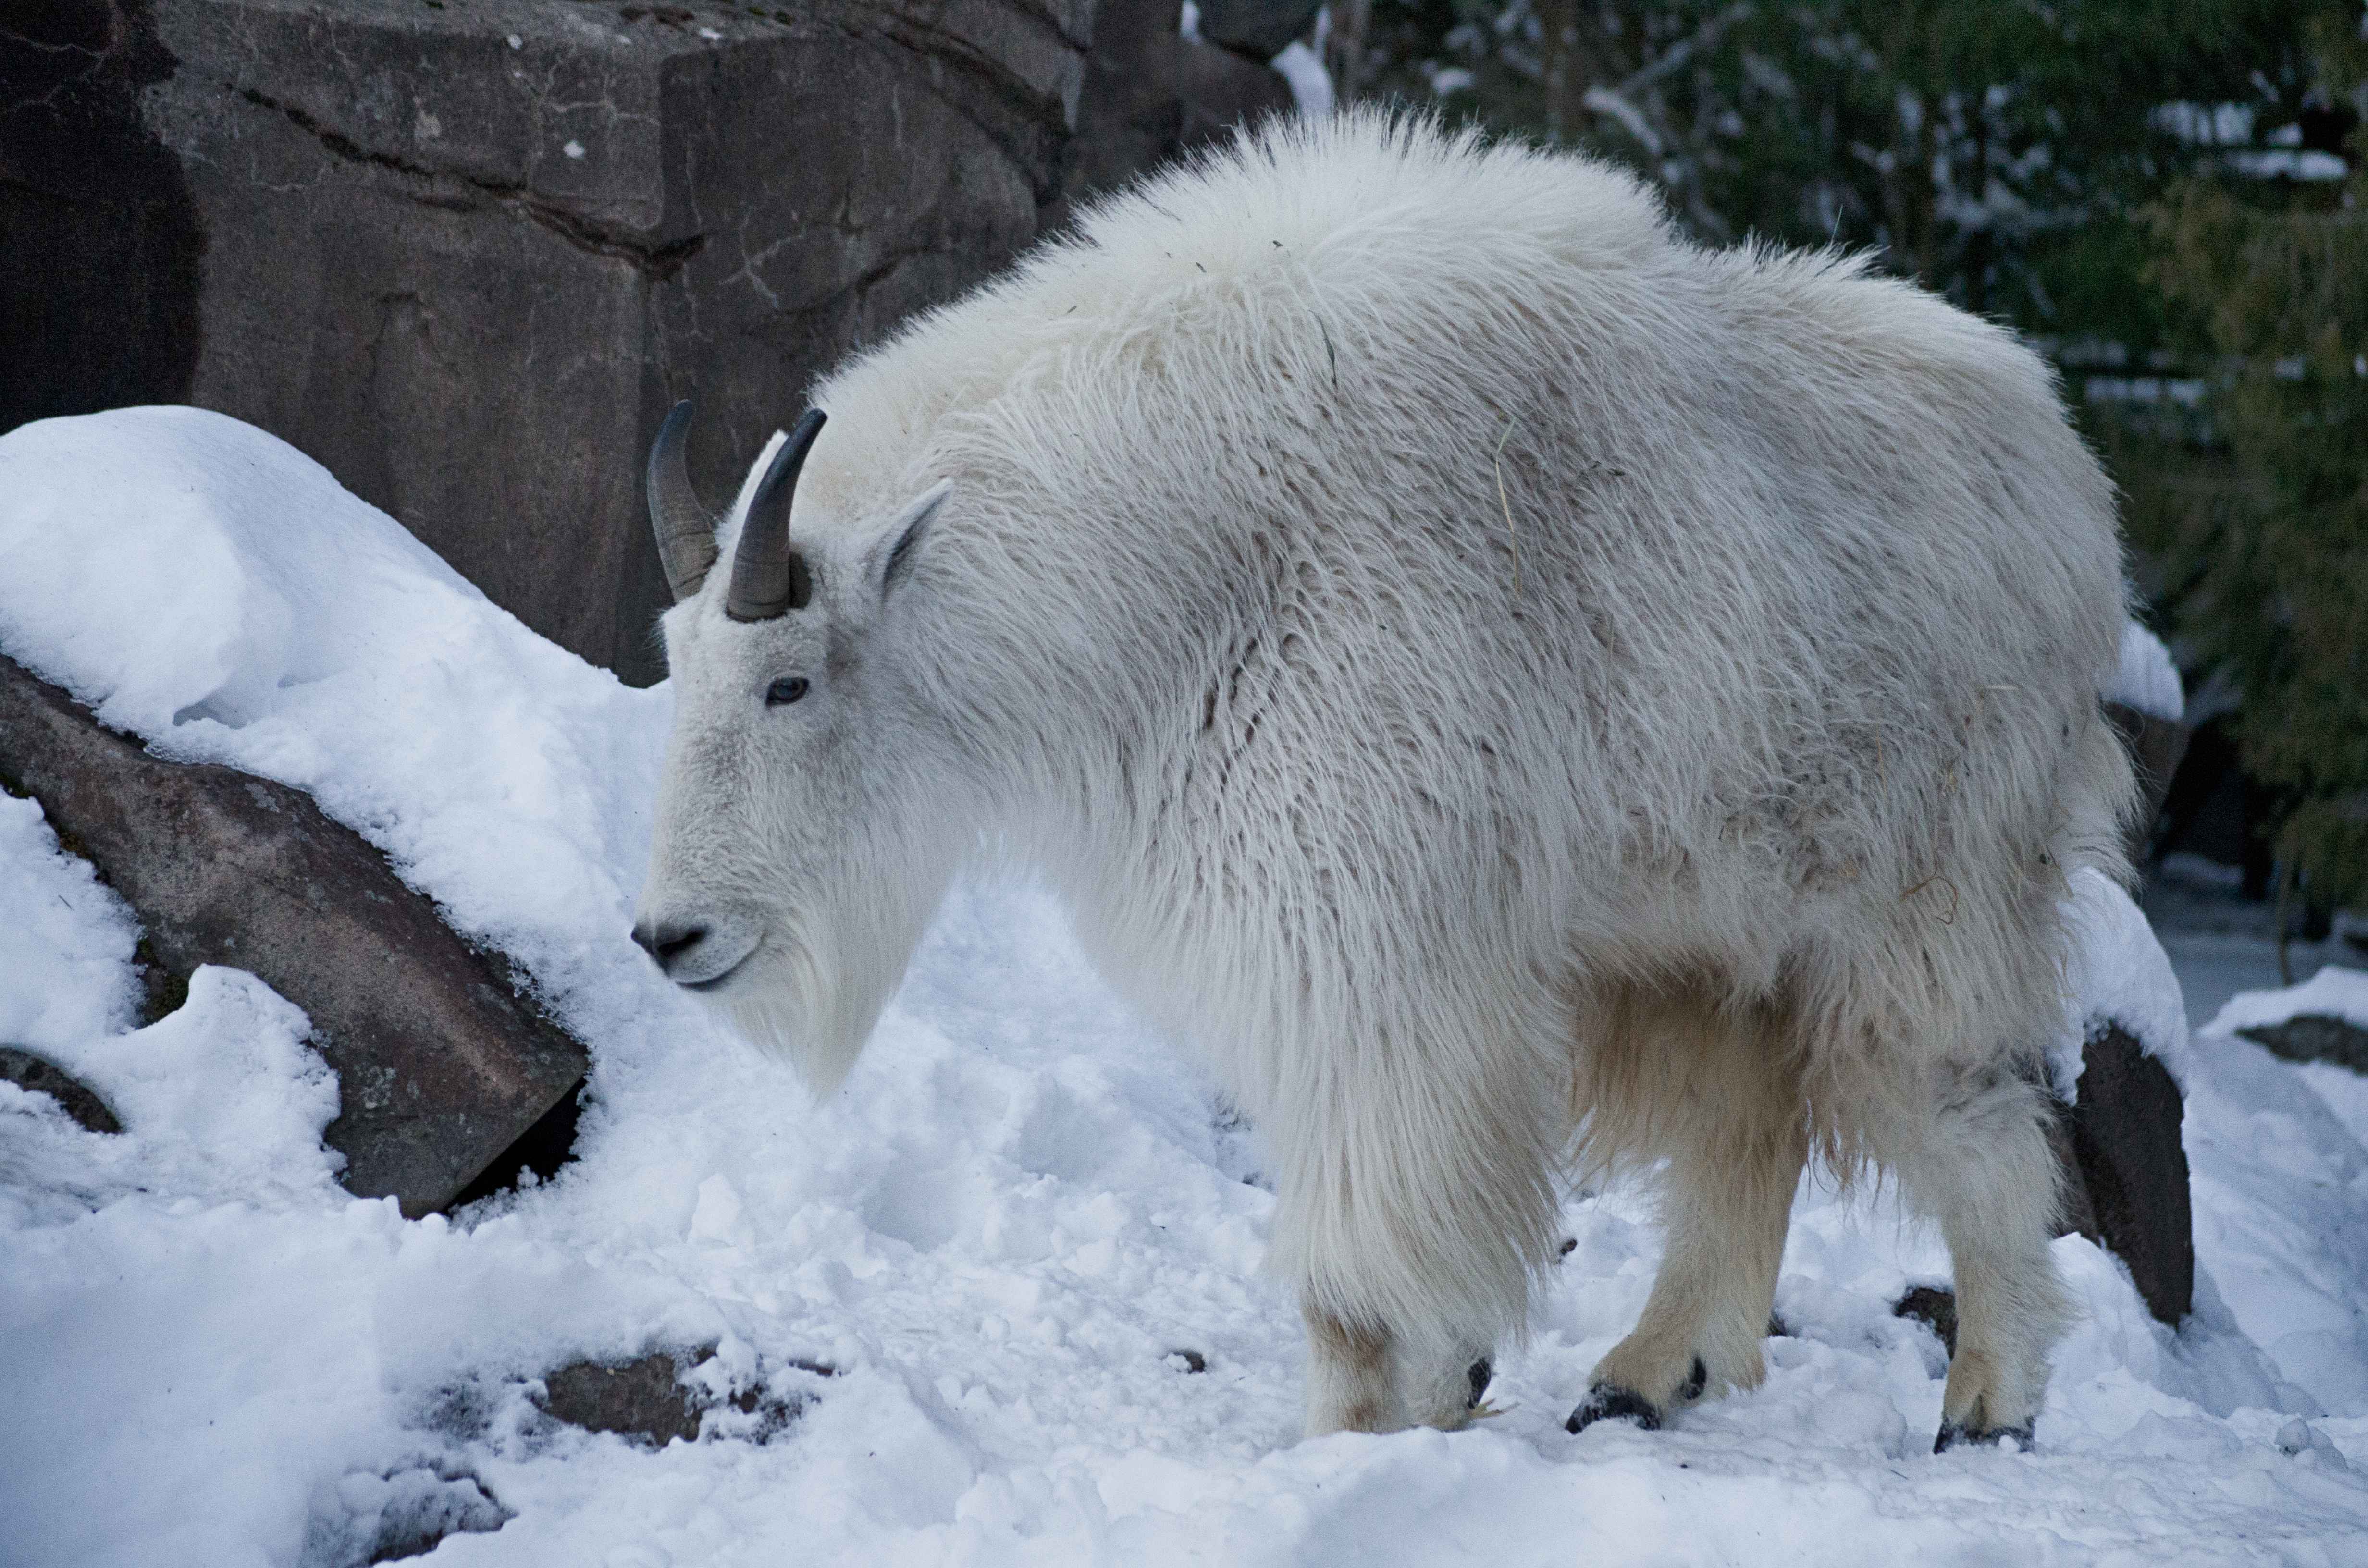 Mountain goat smiling in snow